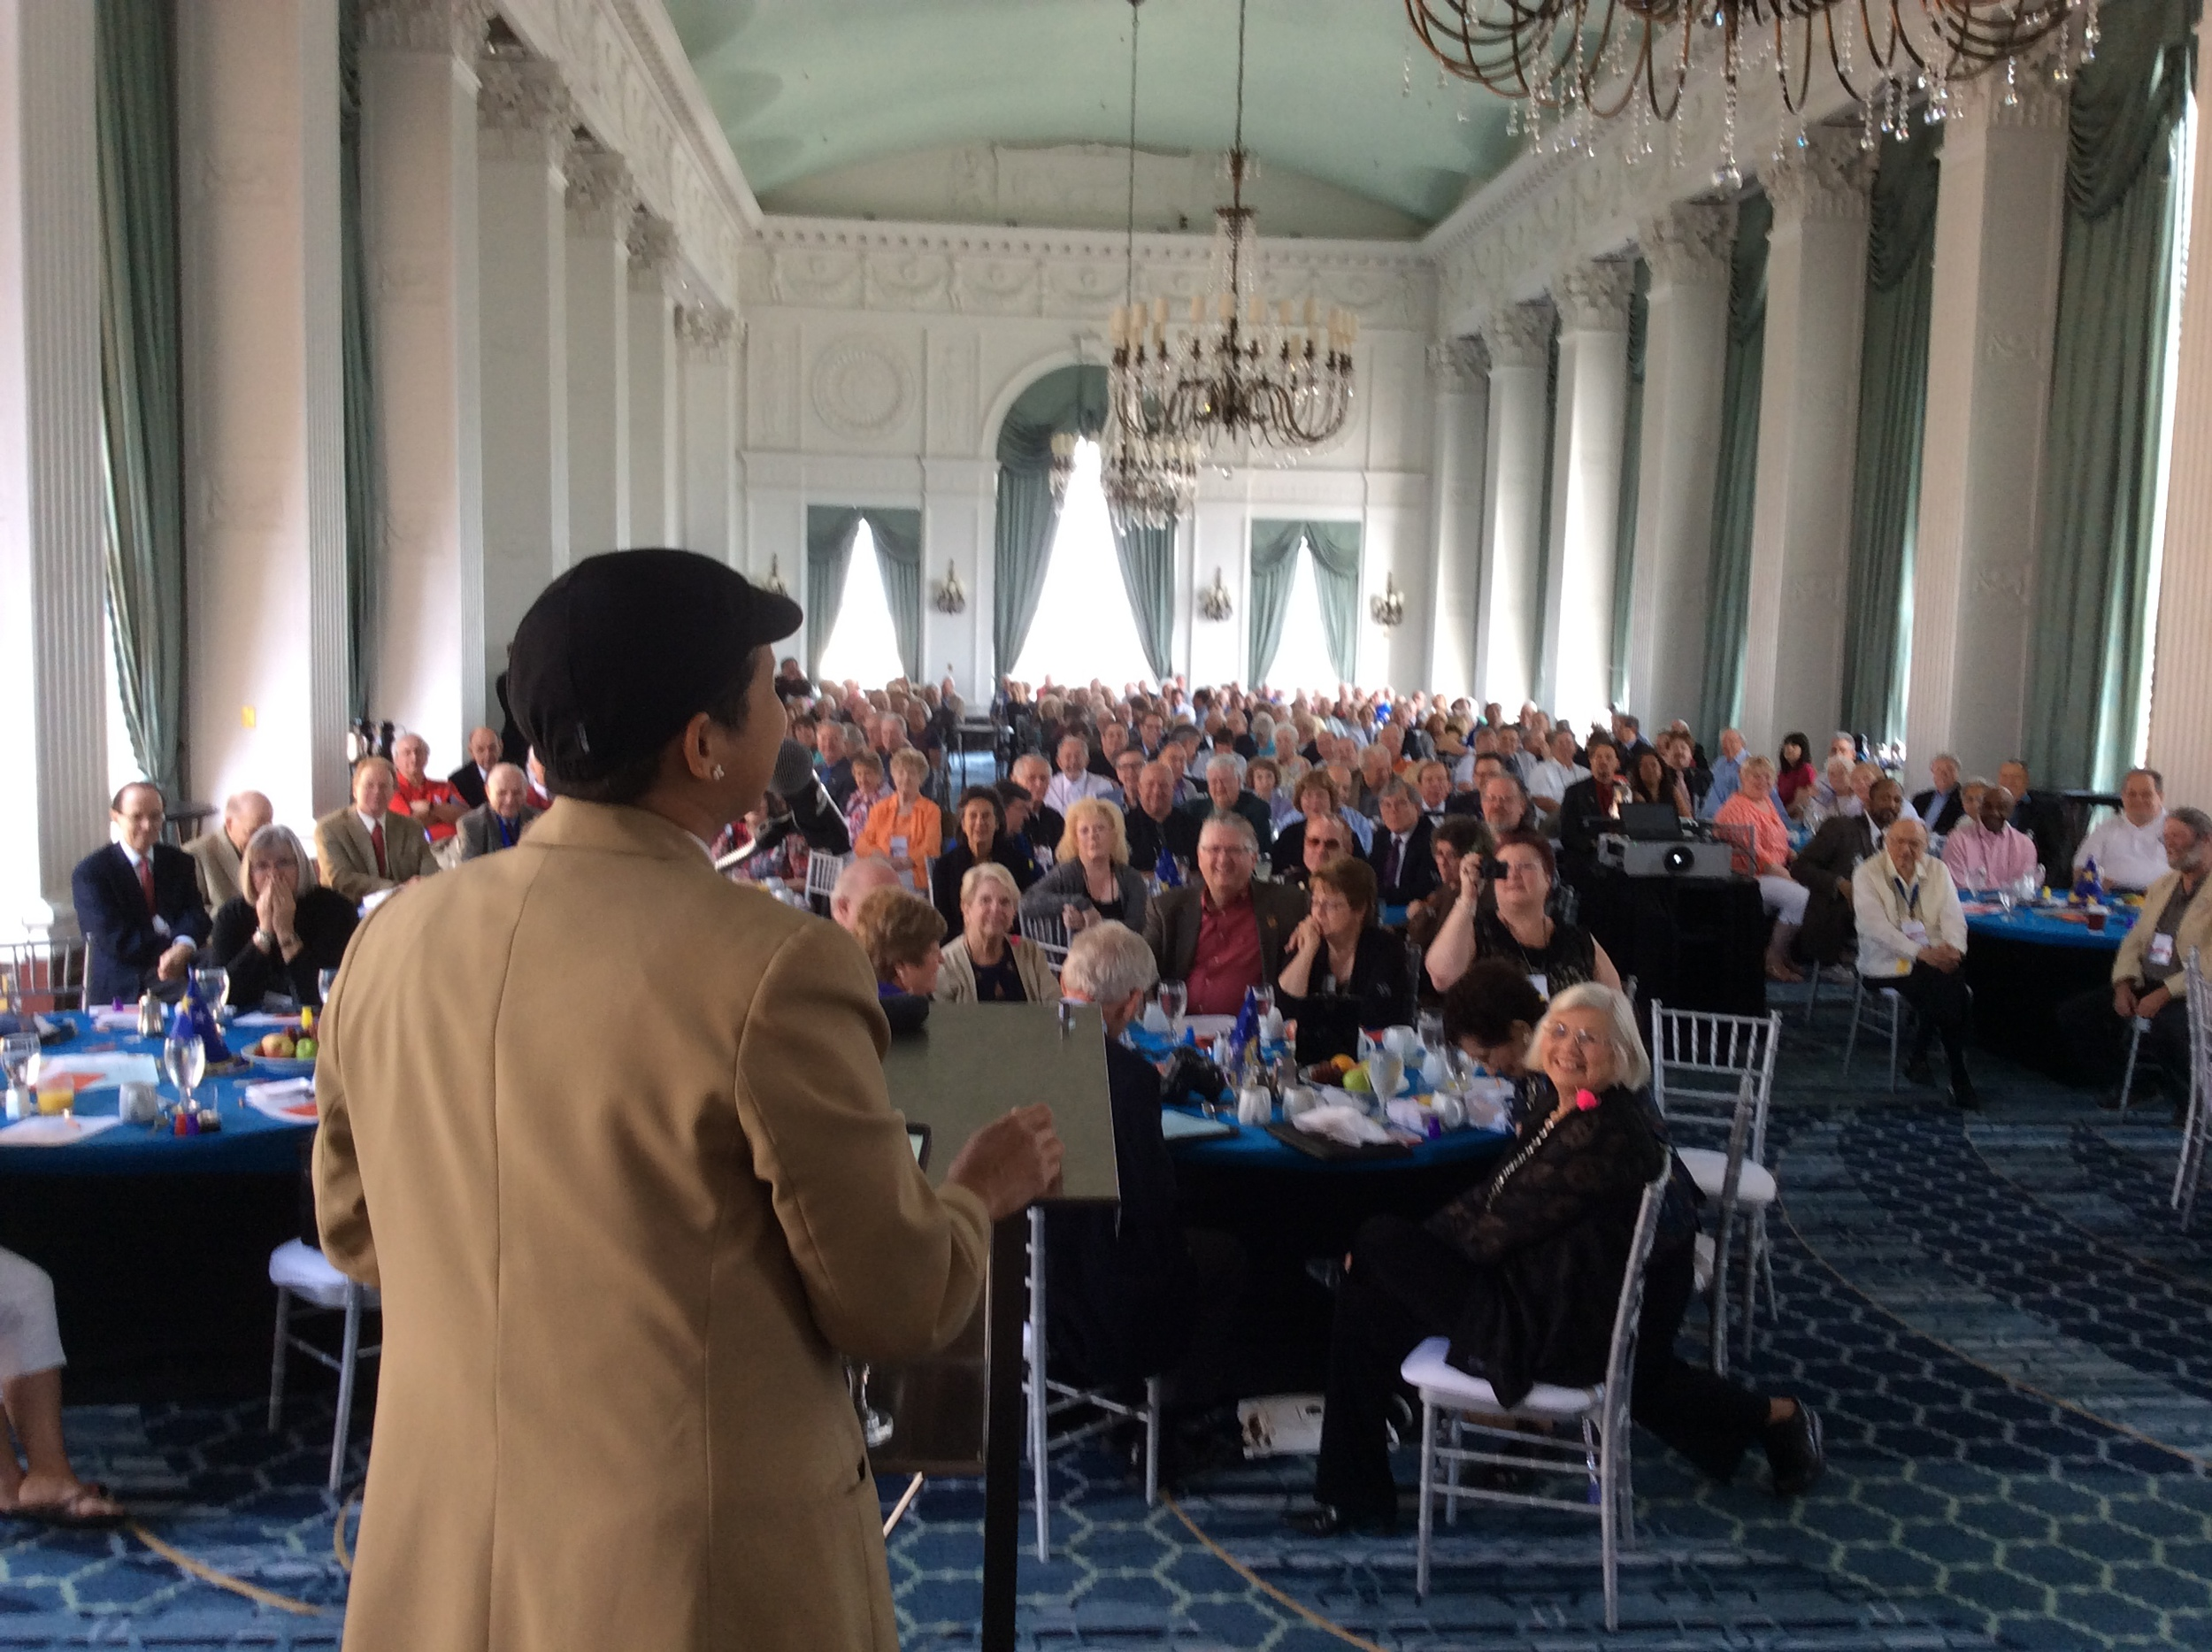 Lupe's Audience at Merlin Breakfast